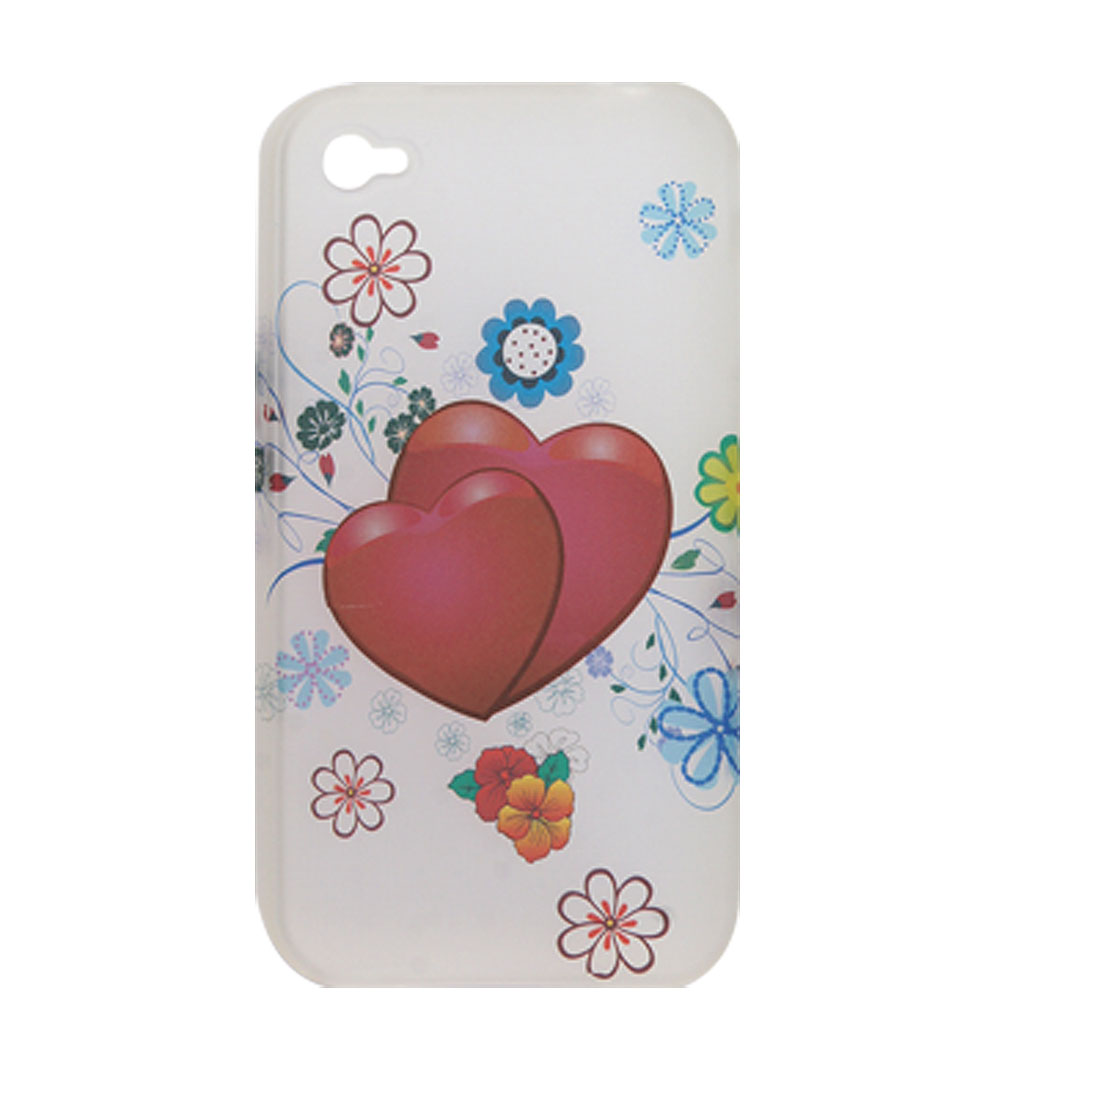 Double Heart Prints Semitransparent Soft Plastic Case for iPhone 4 4G